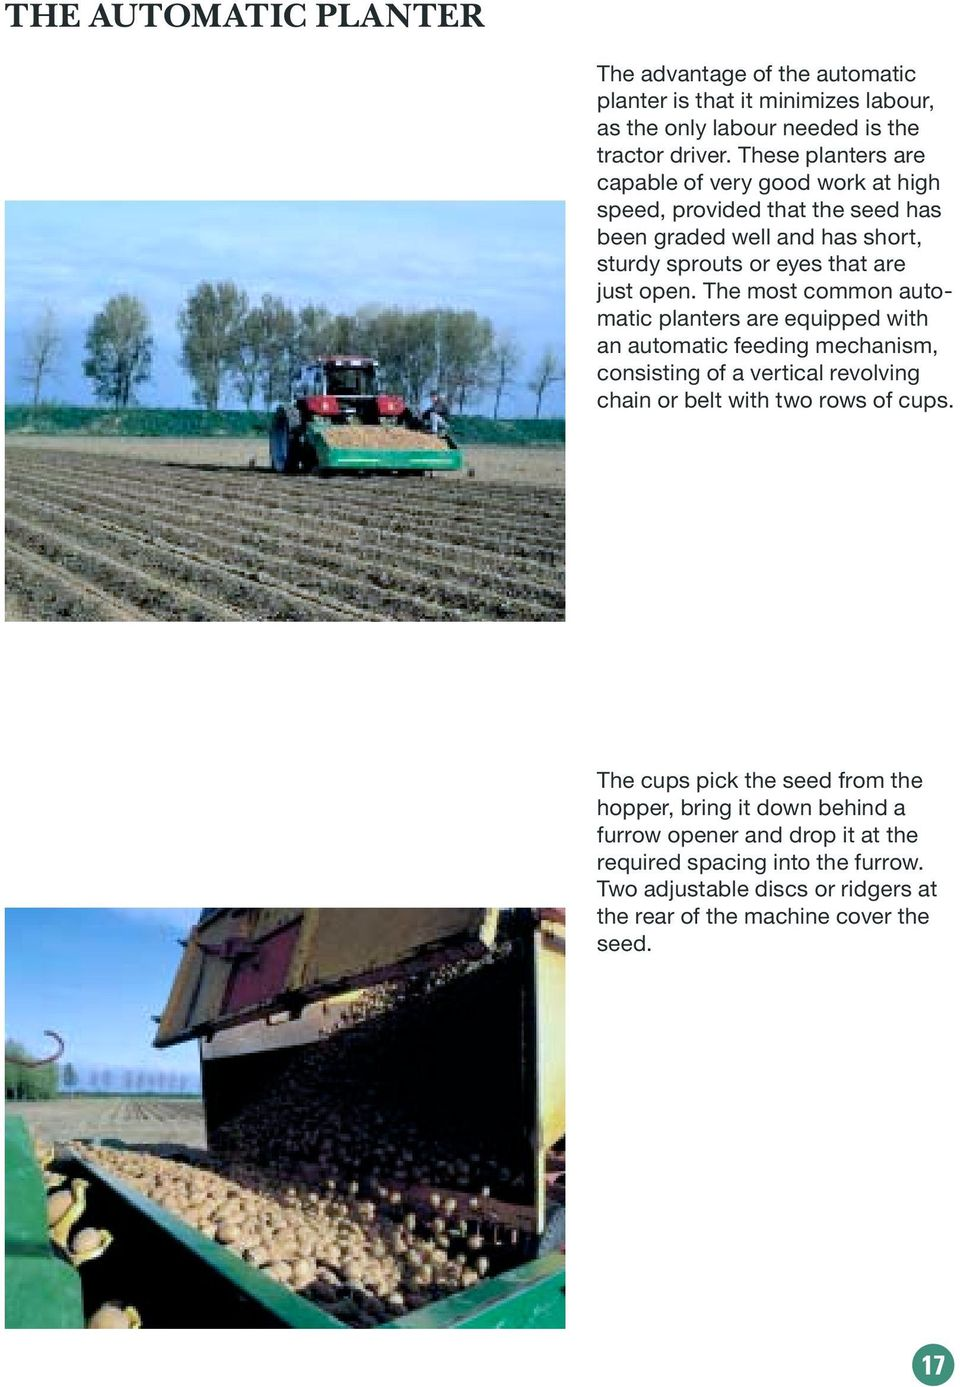 The most common automatic planters are equipped with an automatic feeding mechanism, consisting of a vertical revolving chain or belt with two rows of cups.